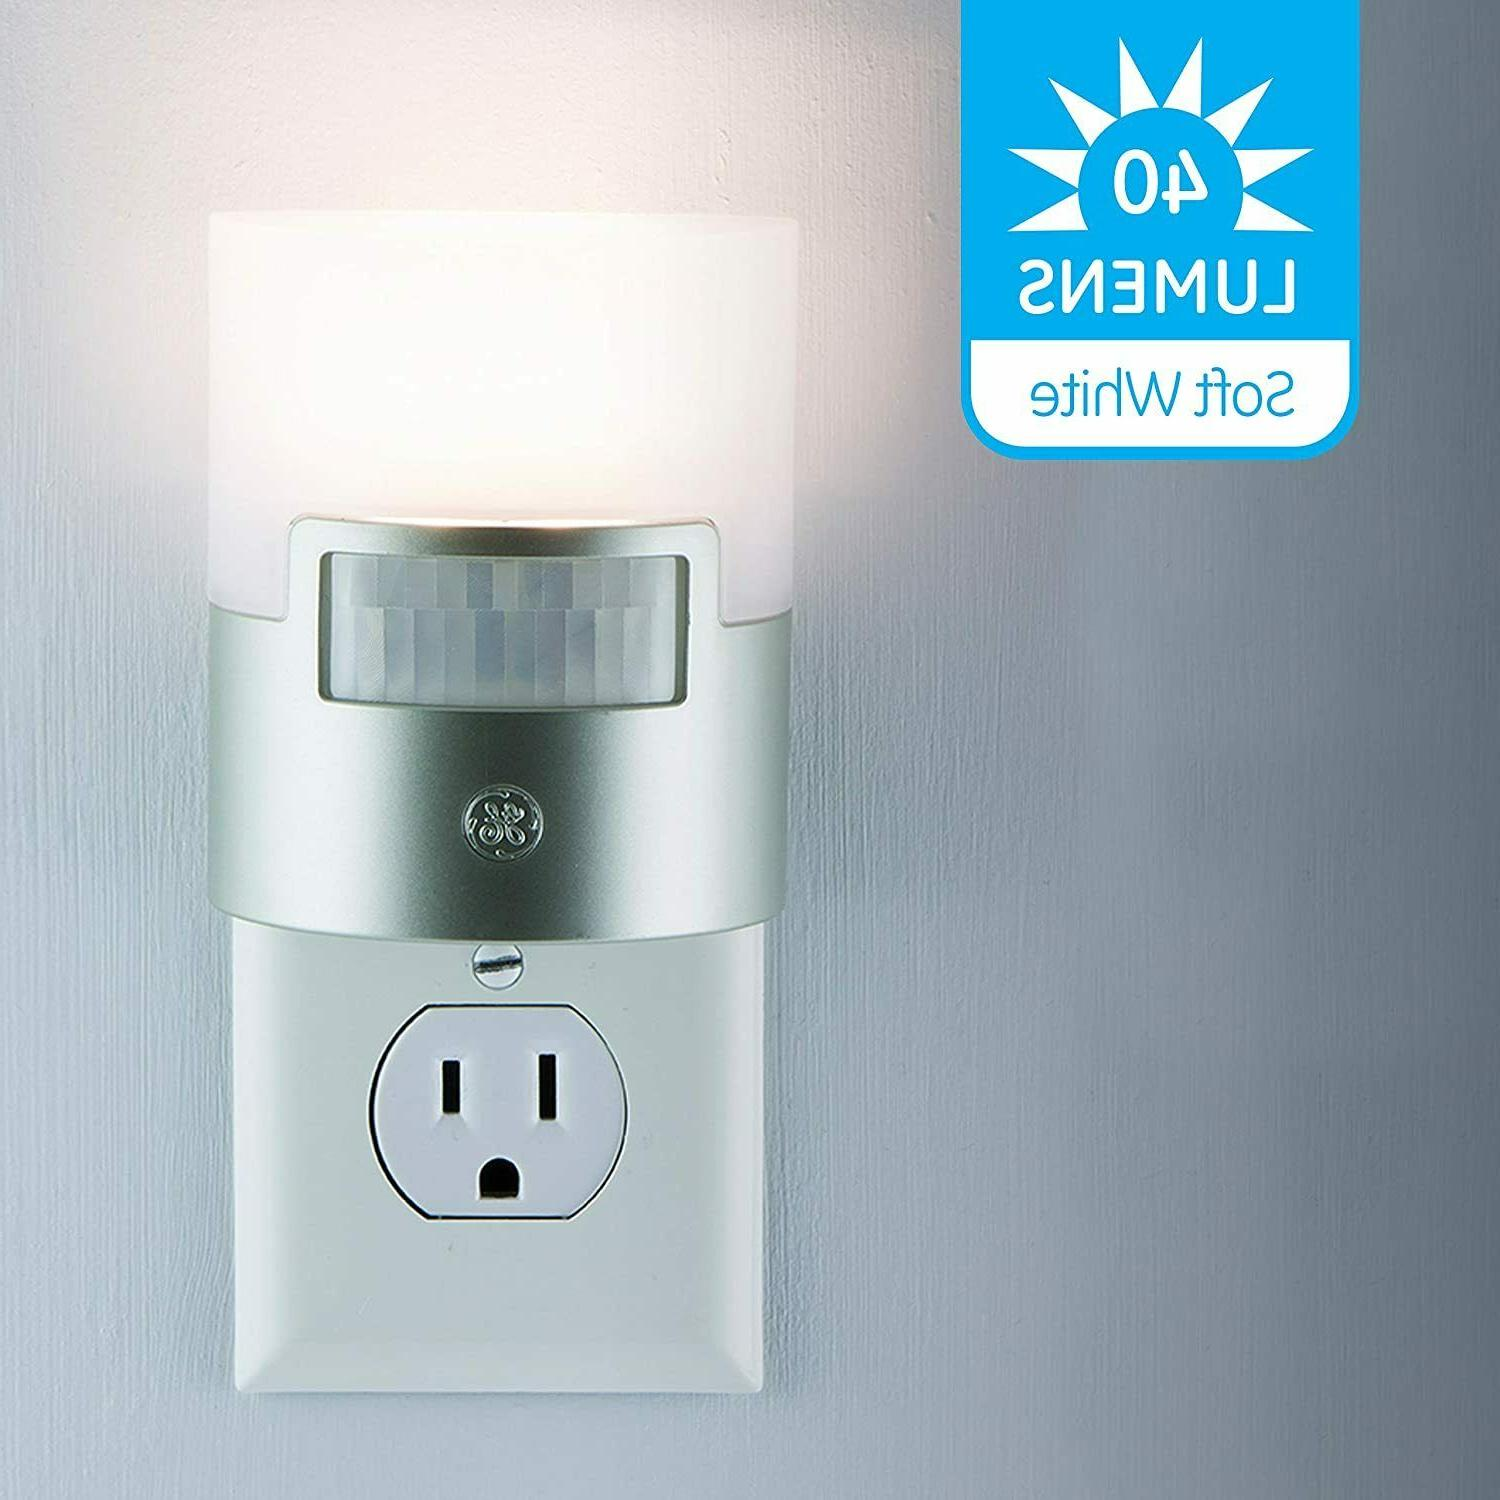 40 LM Silver Soft White For Bedroom Nursery NEW